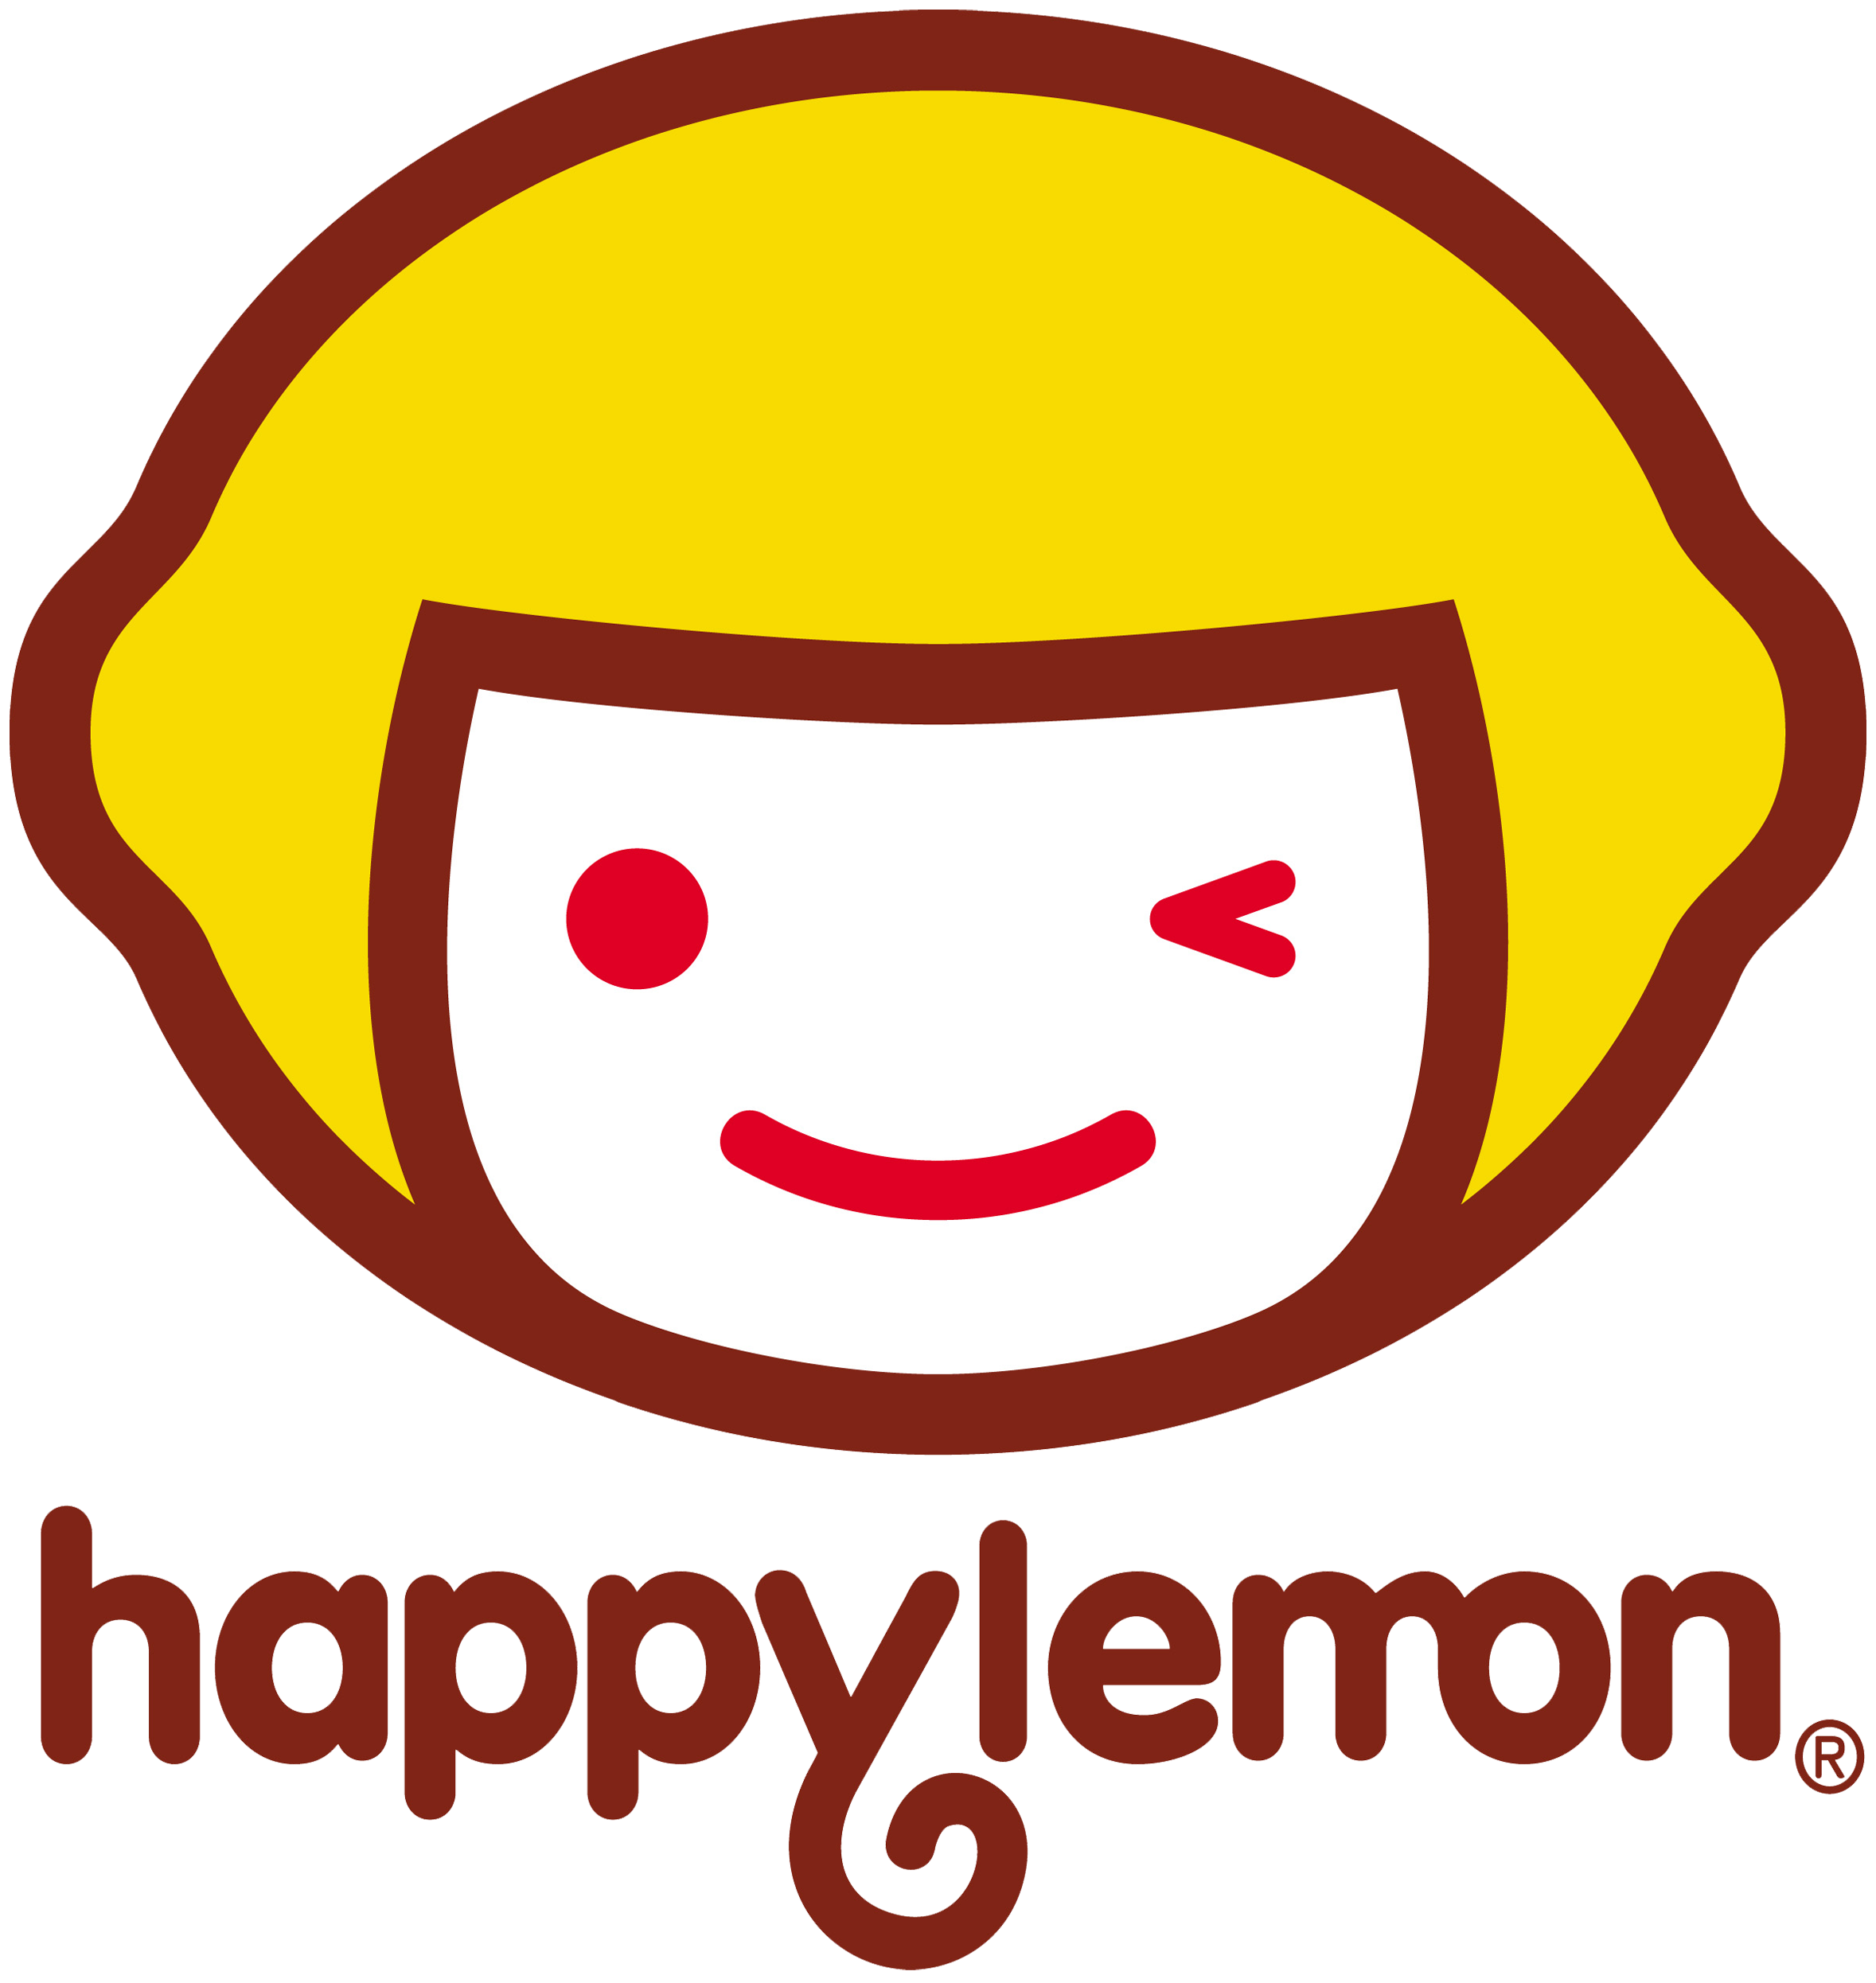 png library library Happy philippines inc careers. Transparent lemon group